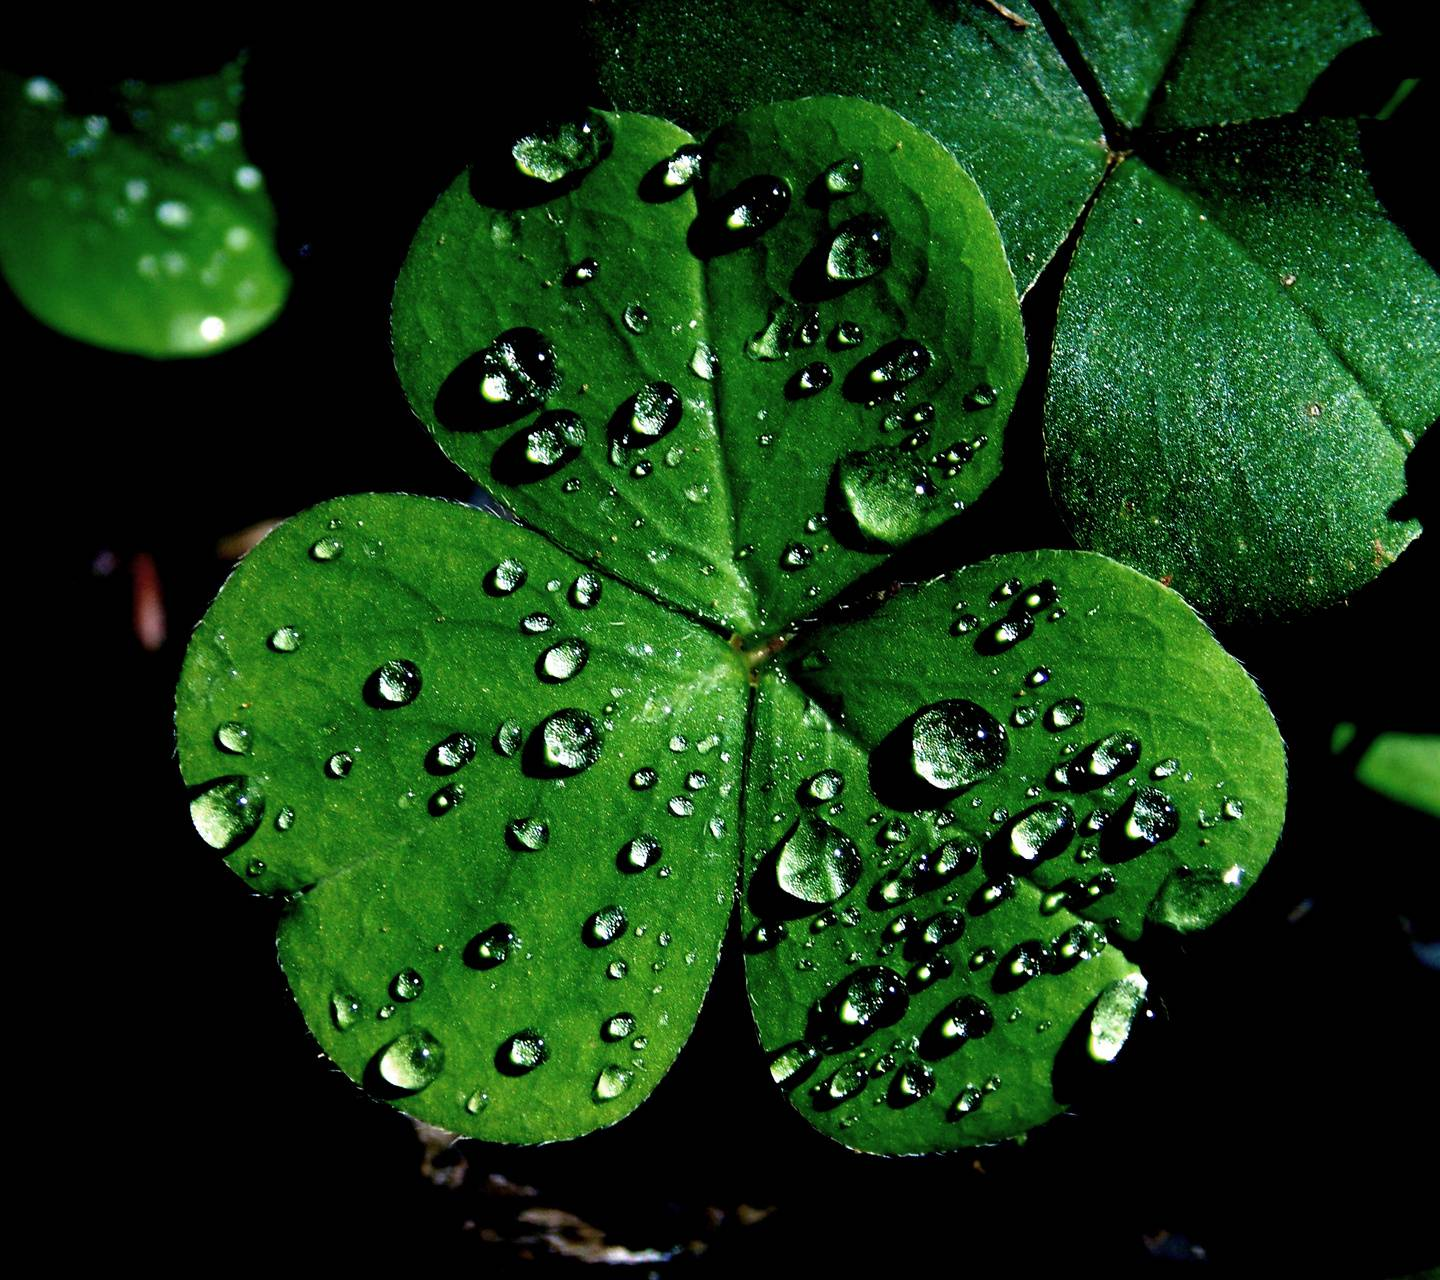 Dewy Clover Wallpaper By Paganuploads 2c Free On Zedge